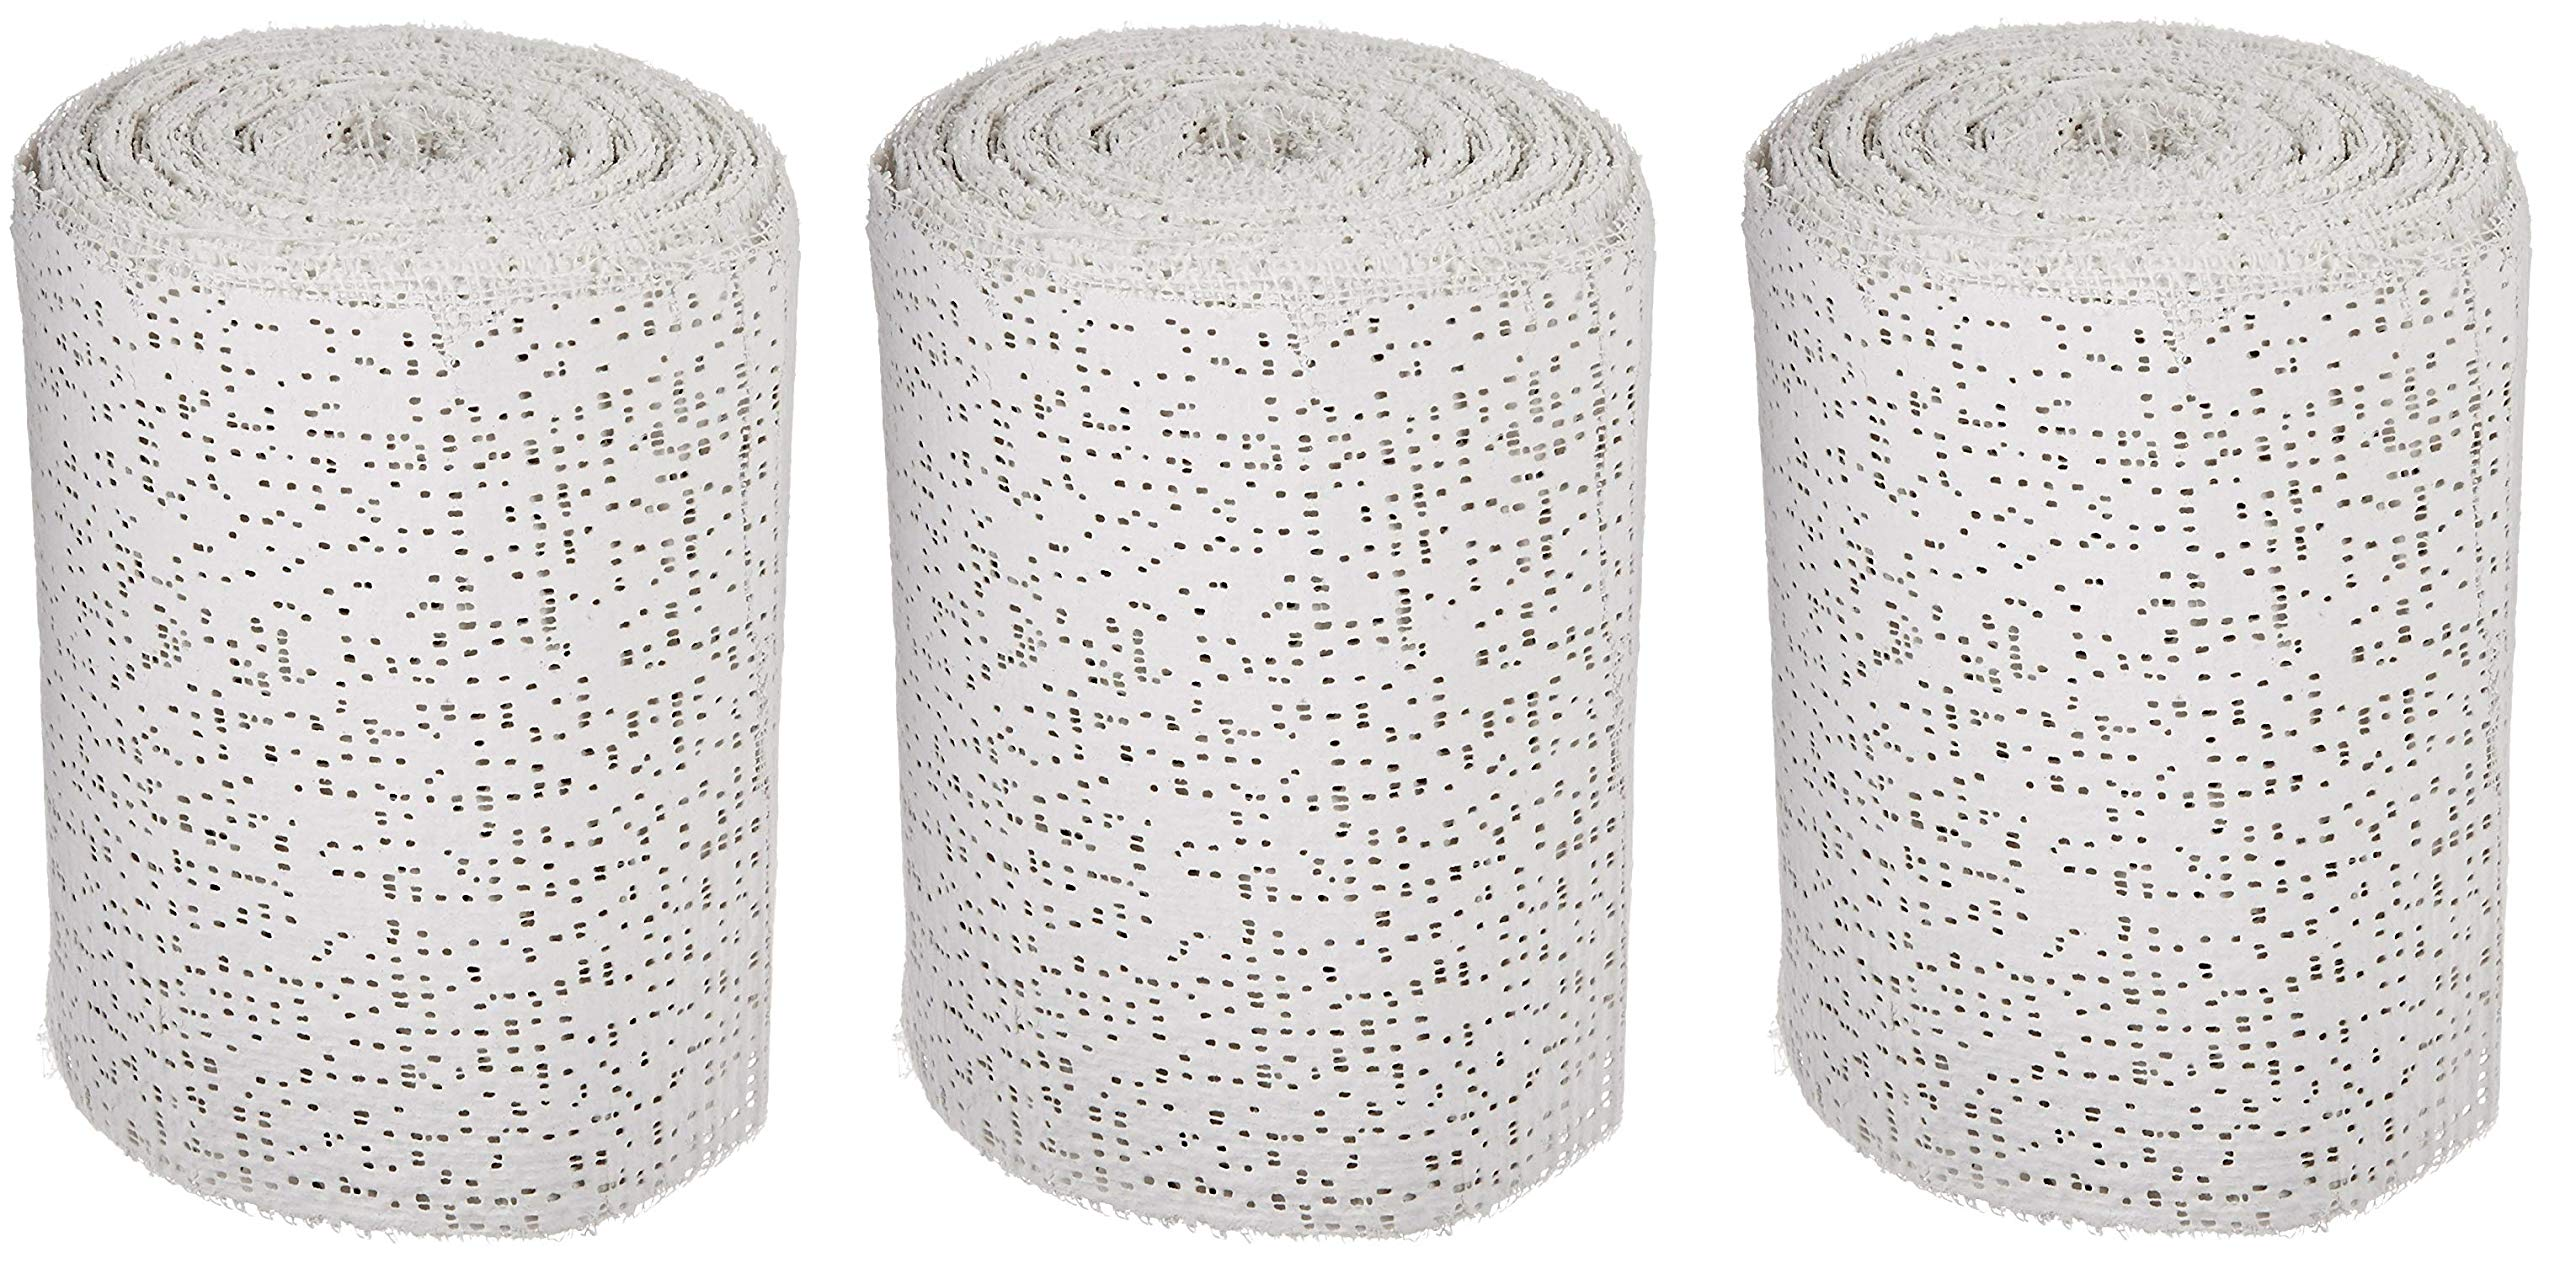 Sax Professional Plaster Wrap Roll, 4 Inch x 180 Feet, White, 20 Rolls (Pack of 3)